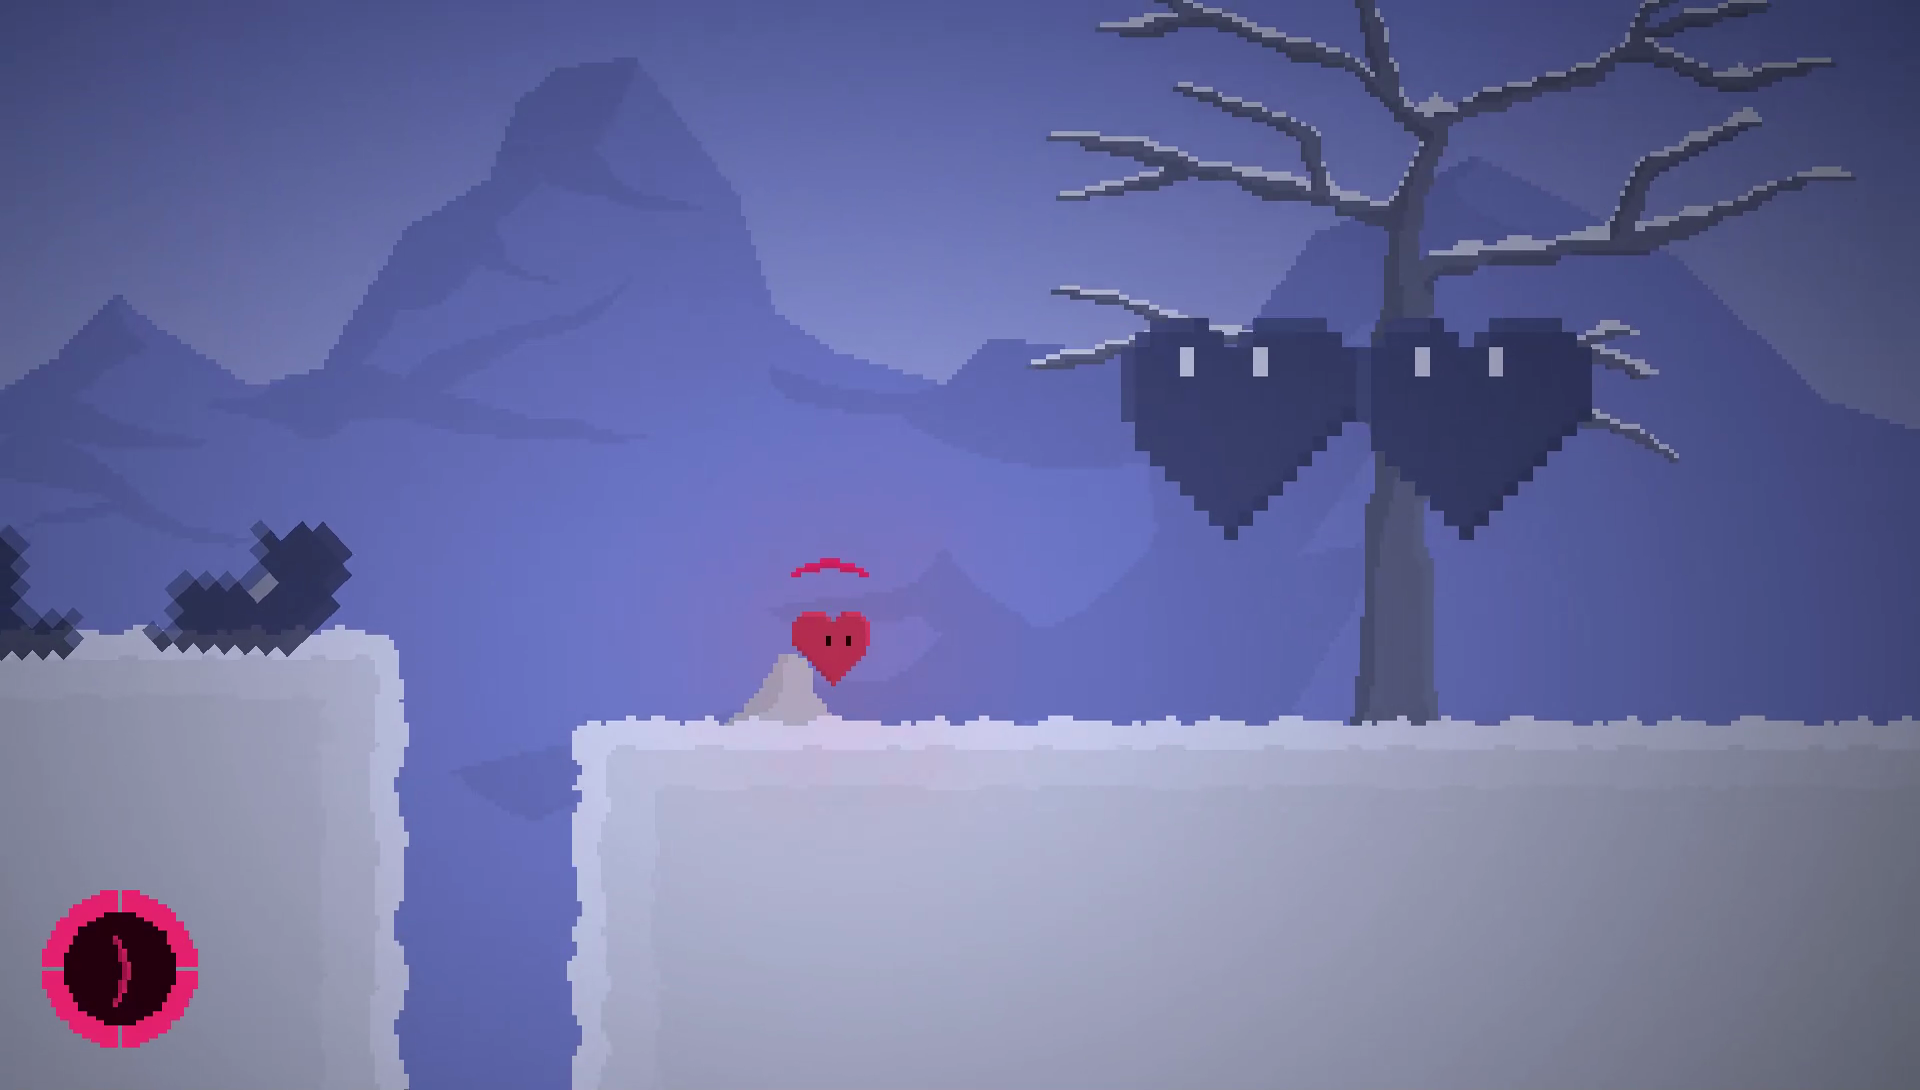 Overcome is a platformer about tackling your inner demons